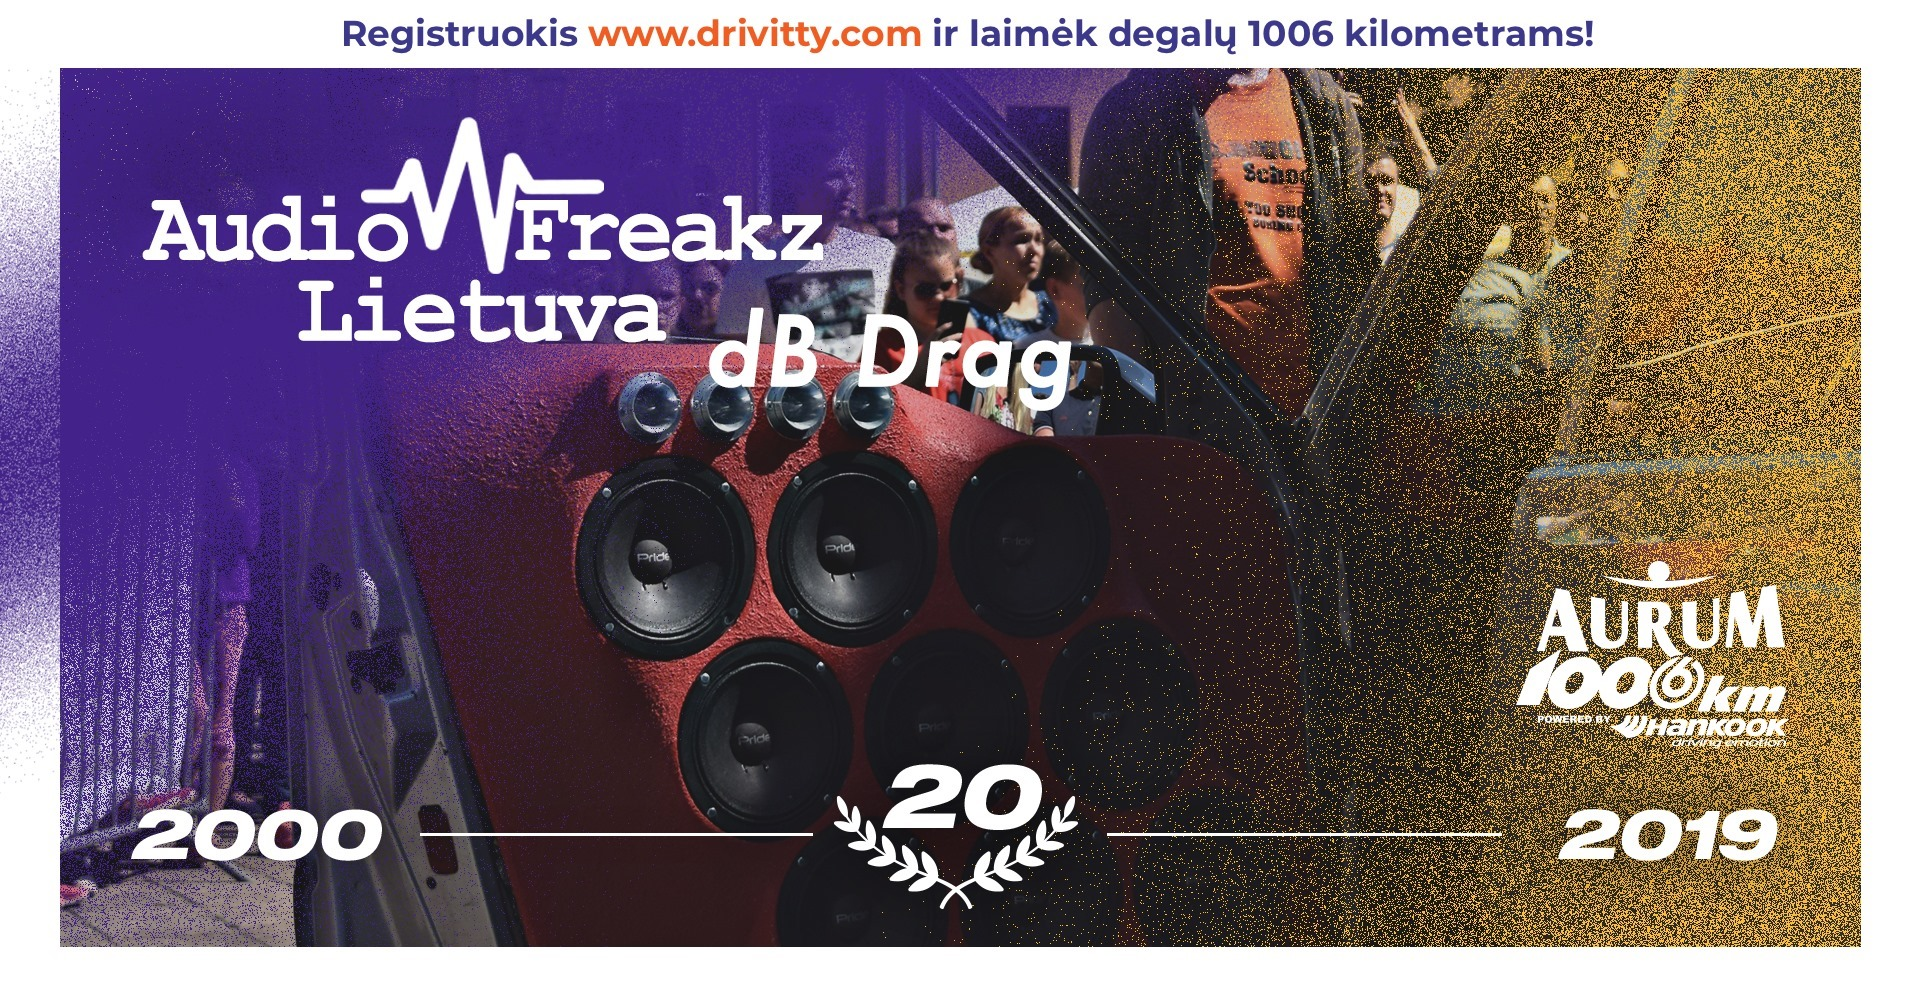 Audio Freakz Lietuva dB Drag